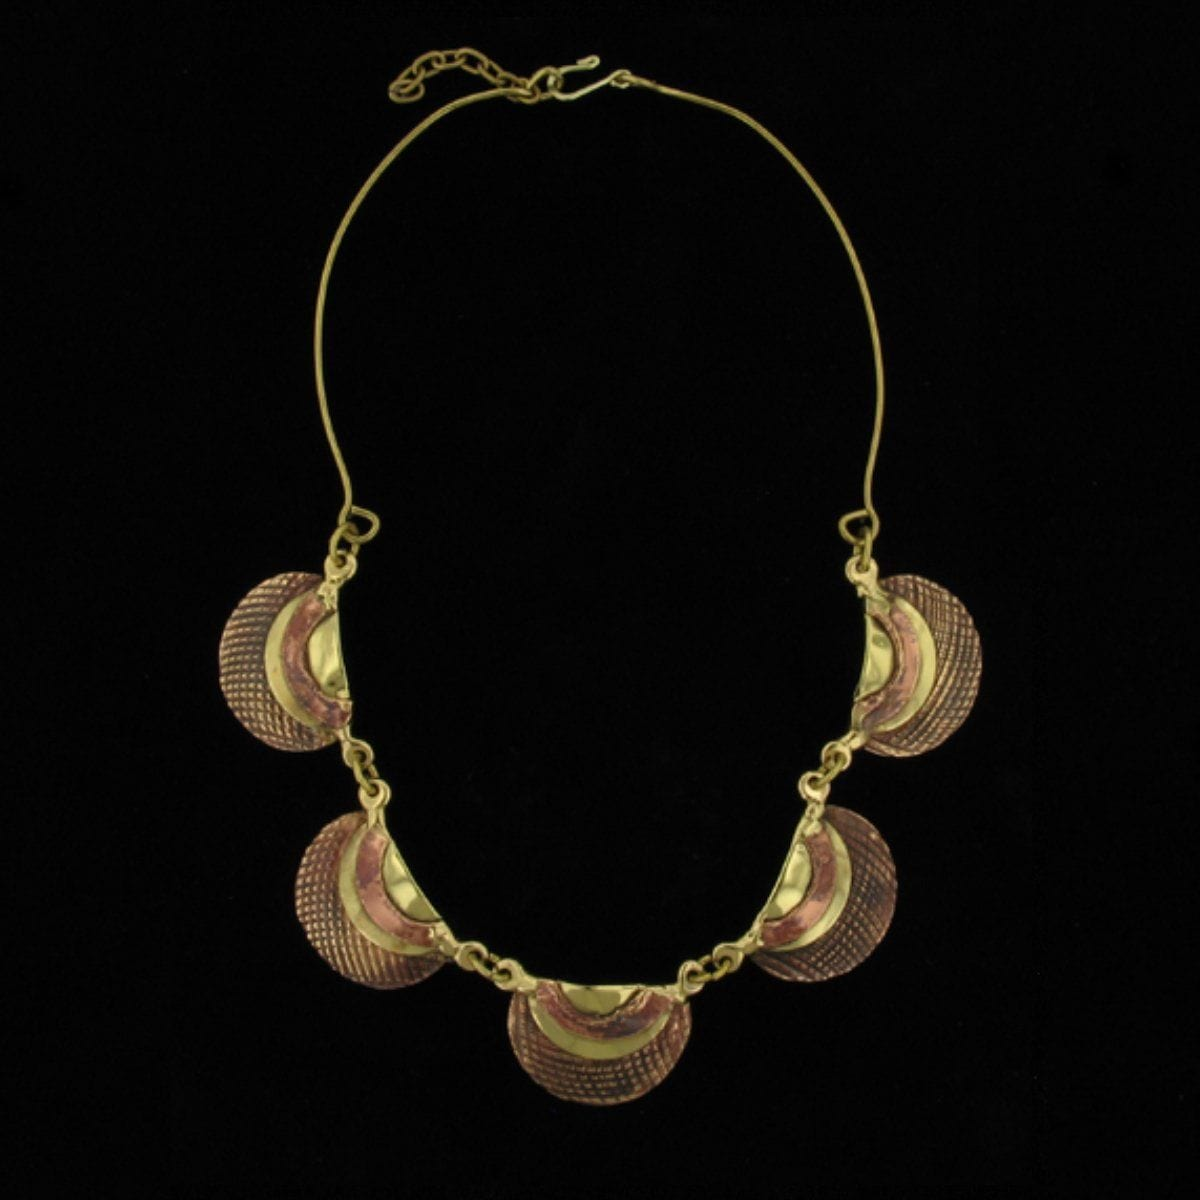 C802br Necklace-Creative Copper-Renee Taylor Gallery